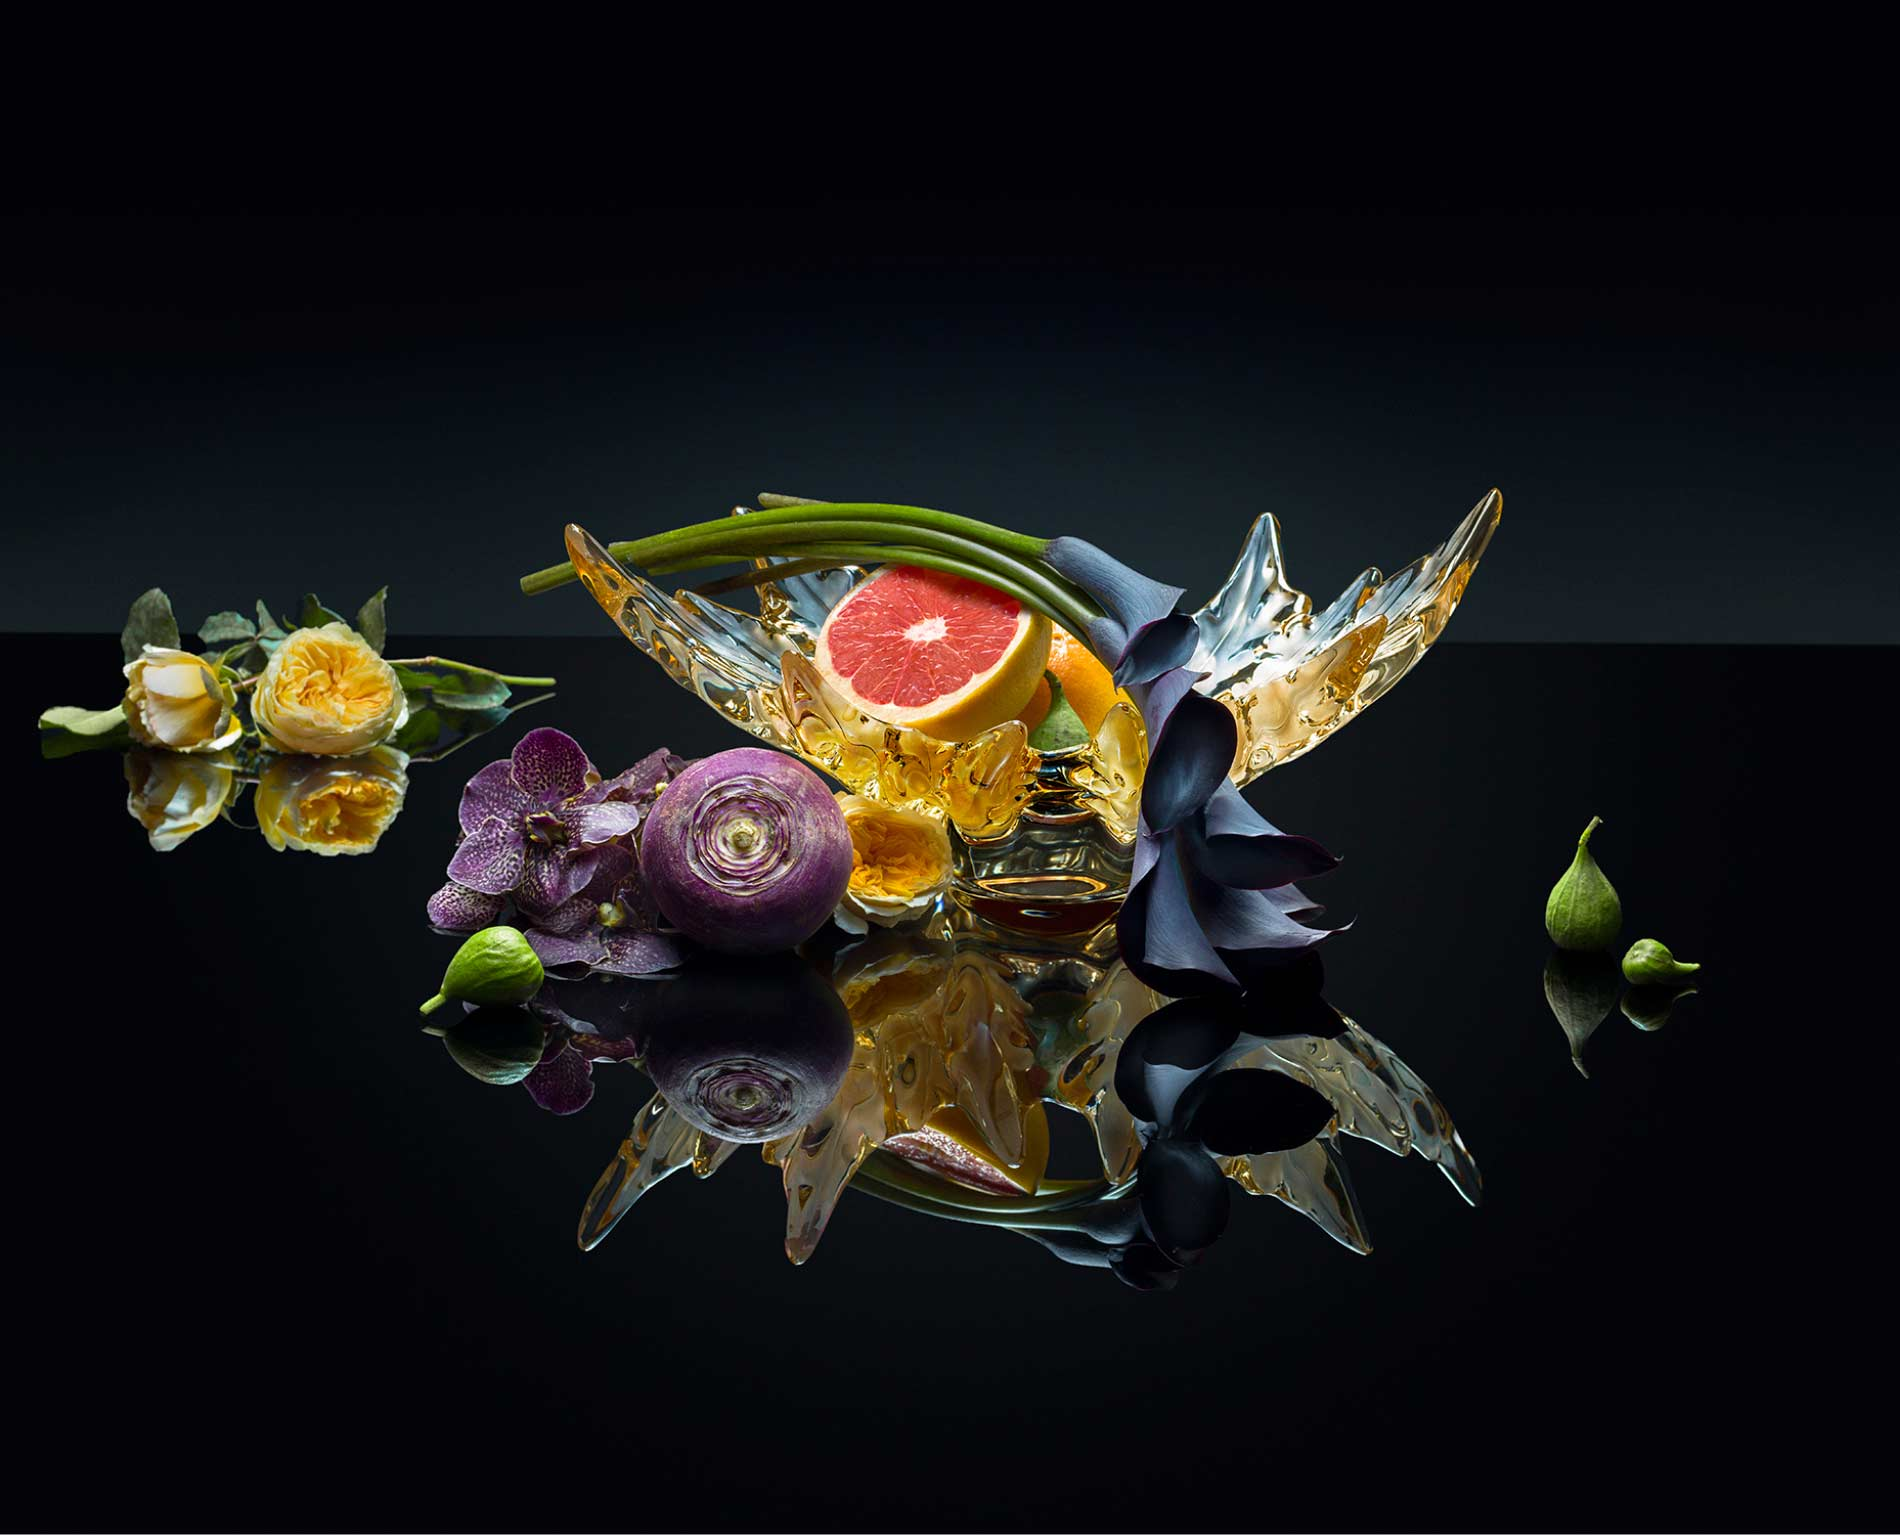 Gorgeous fine crystal brand Lalique's product with fruits and flowers